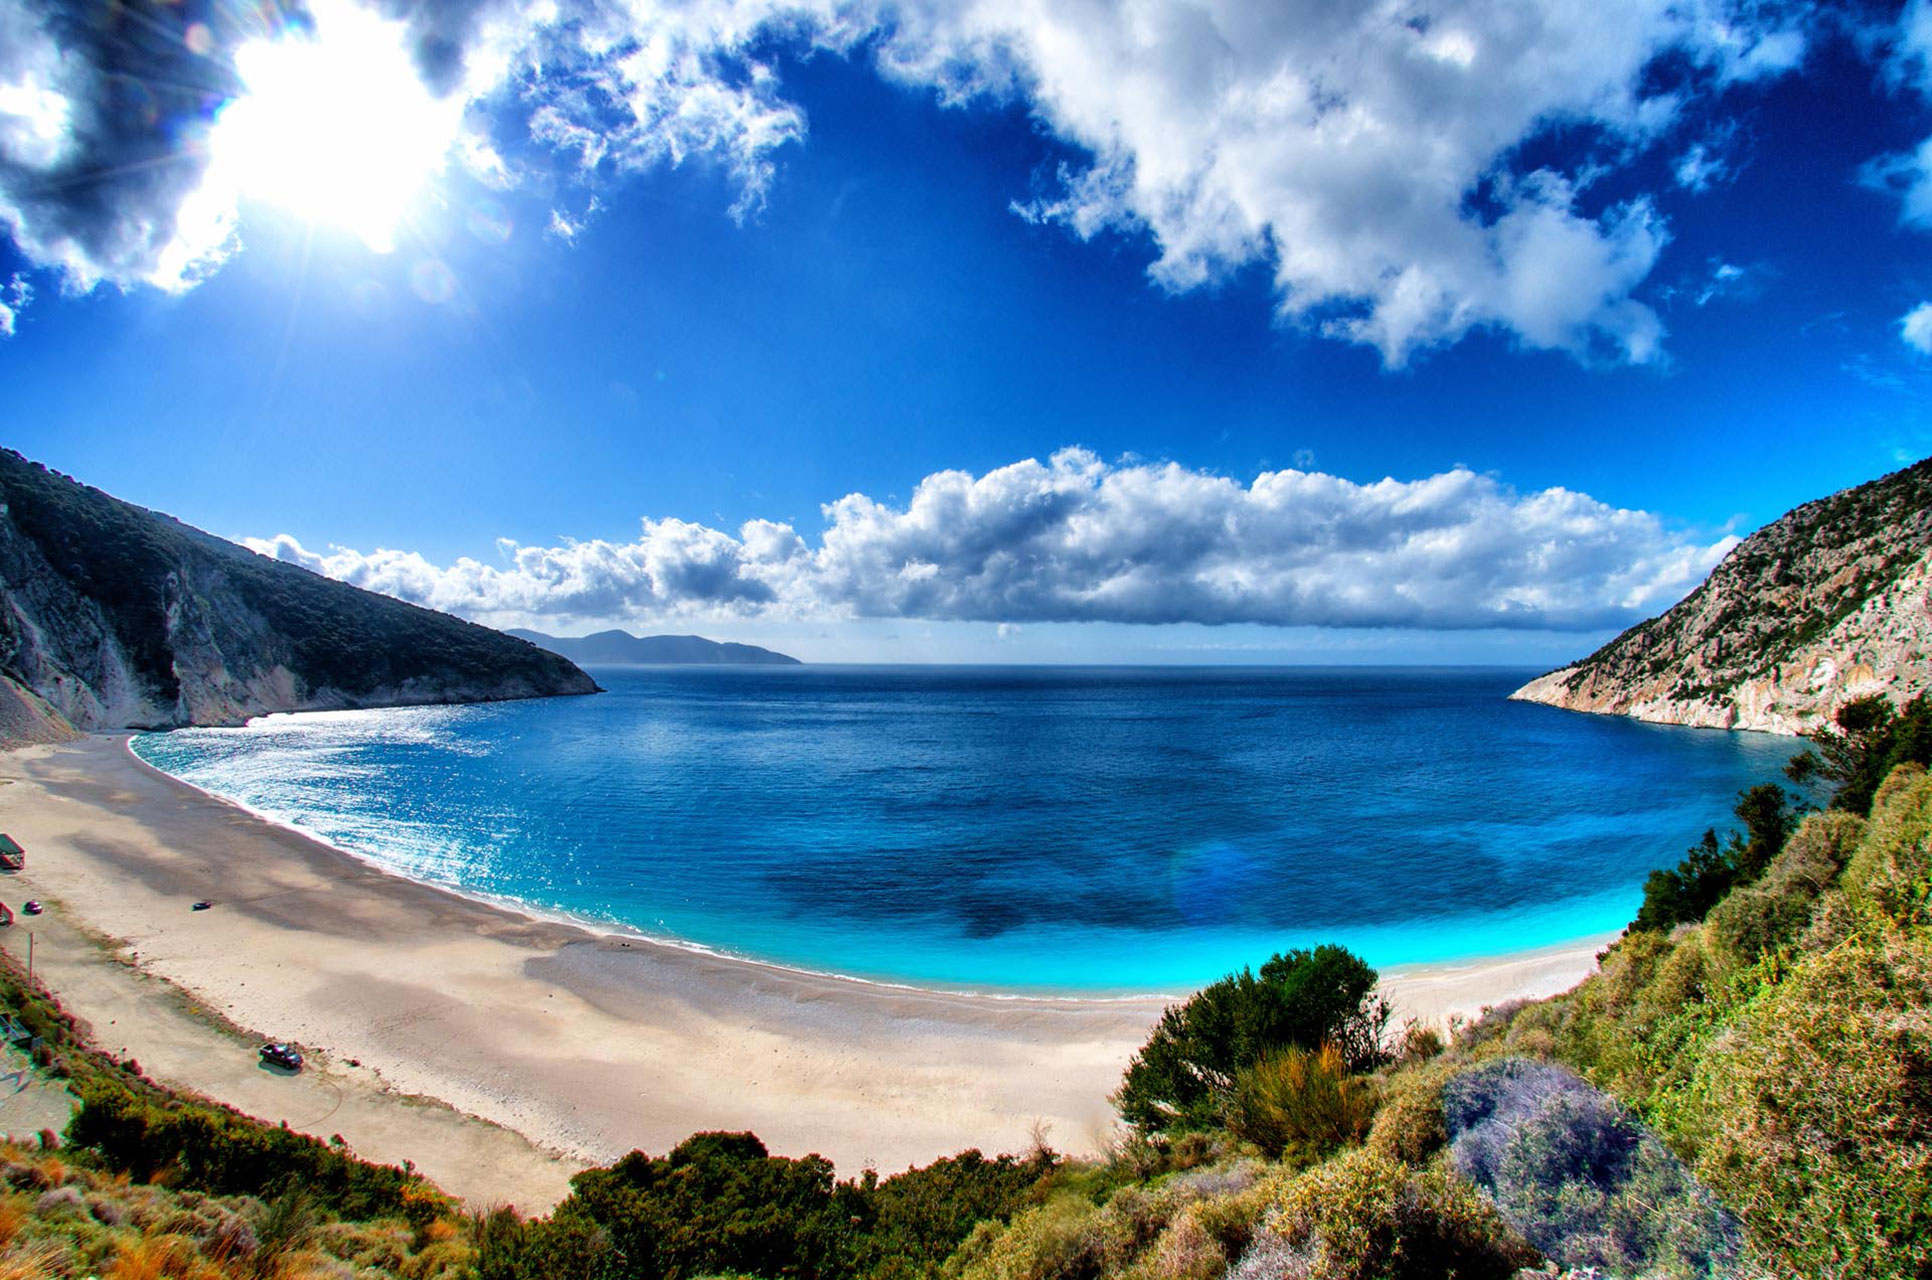 The most beautiful beach in Kefalonia